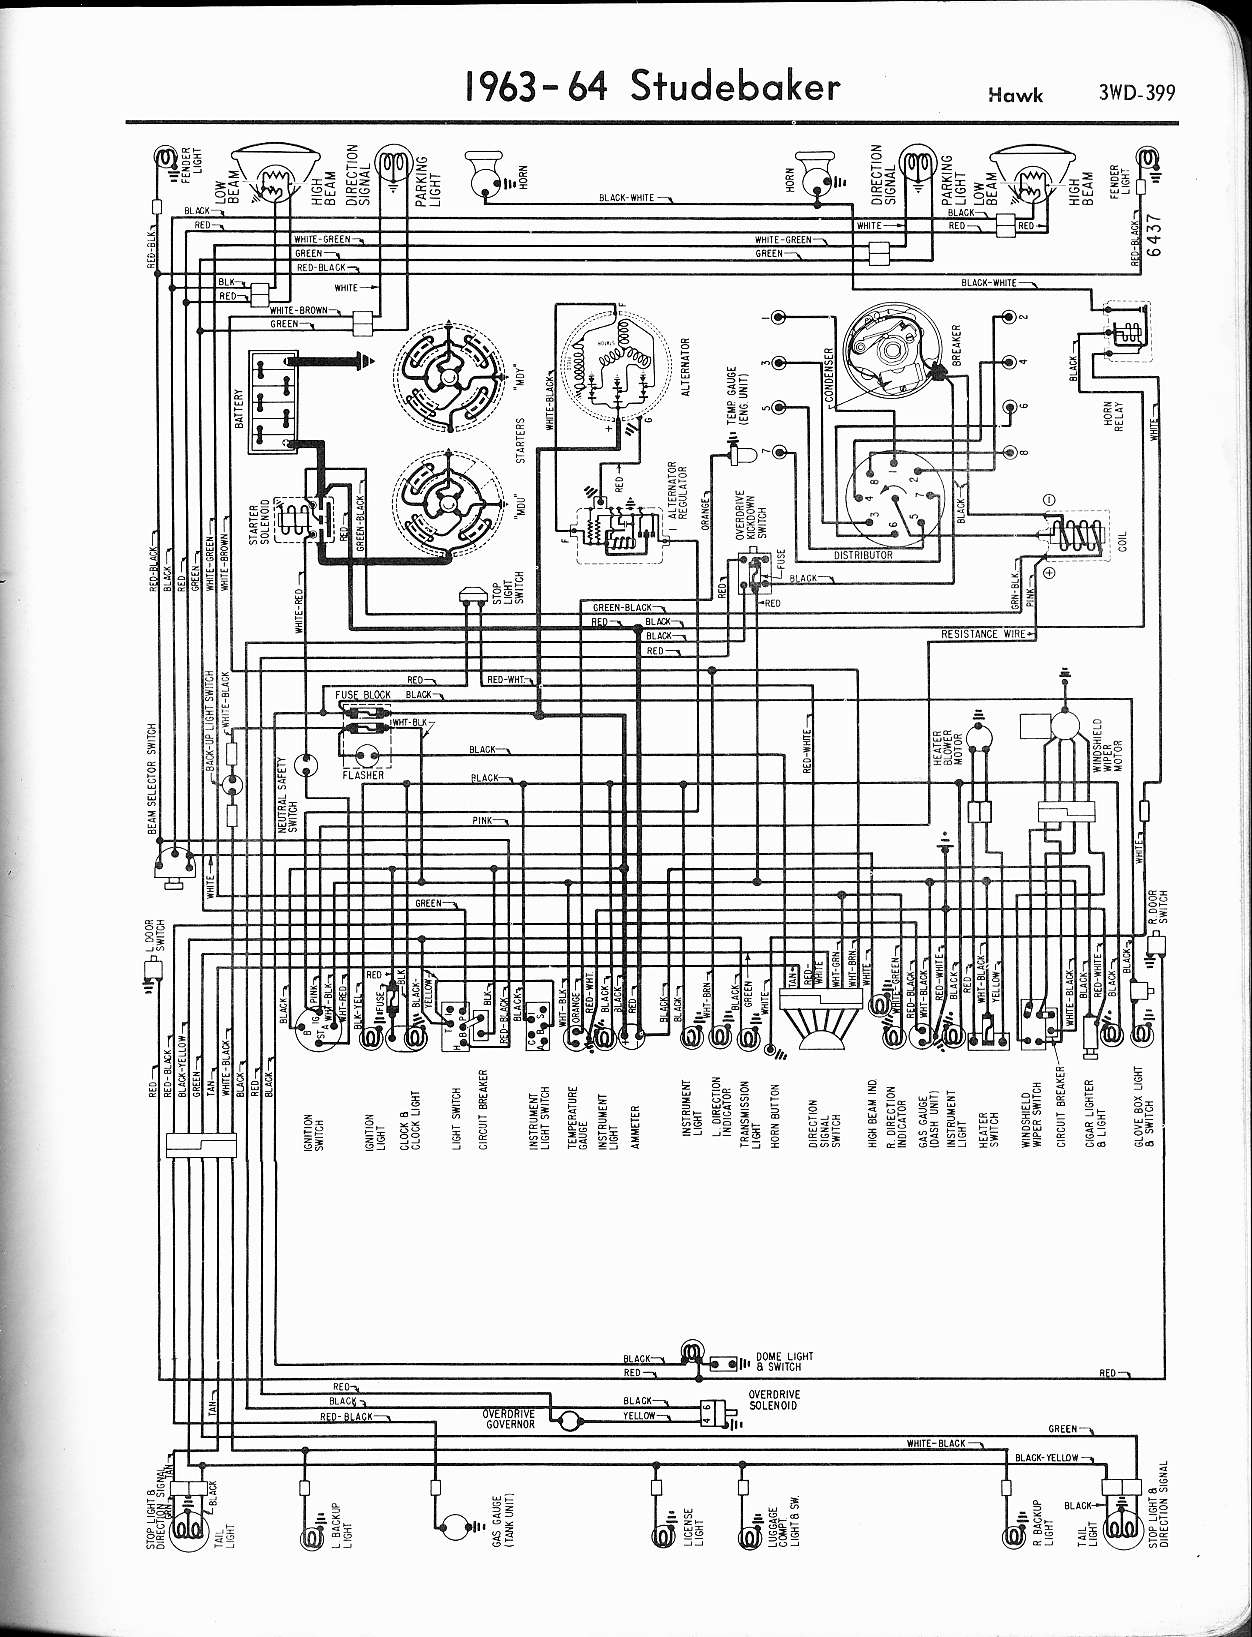 Wiring Diagram Mio Gt Experience Of For Fgc25n Studebaker Diagrams The Old Car Manual Project Rh Oldcarmanualproject Com Motion Sensor